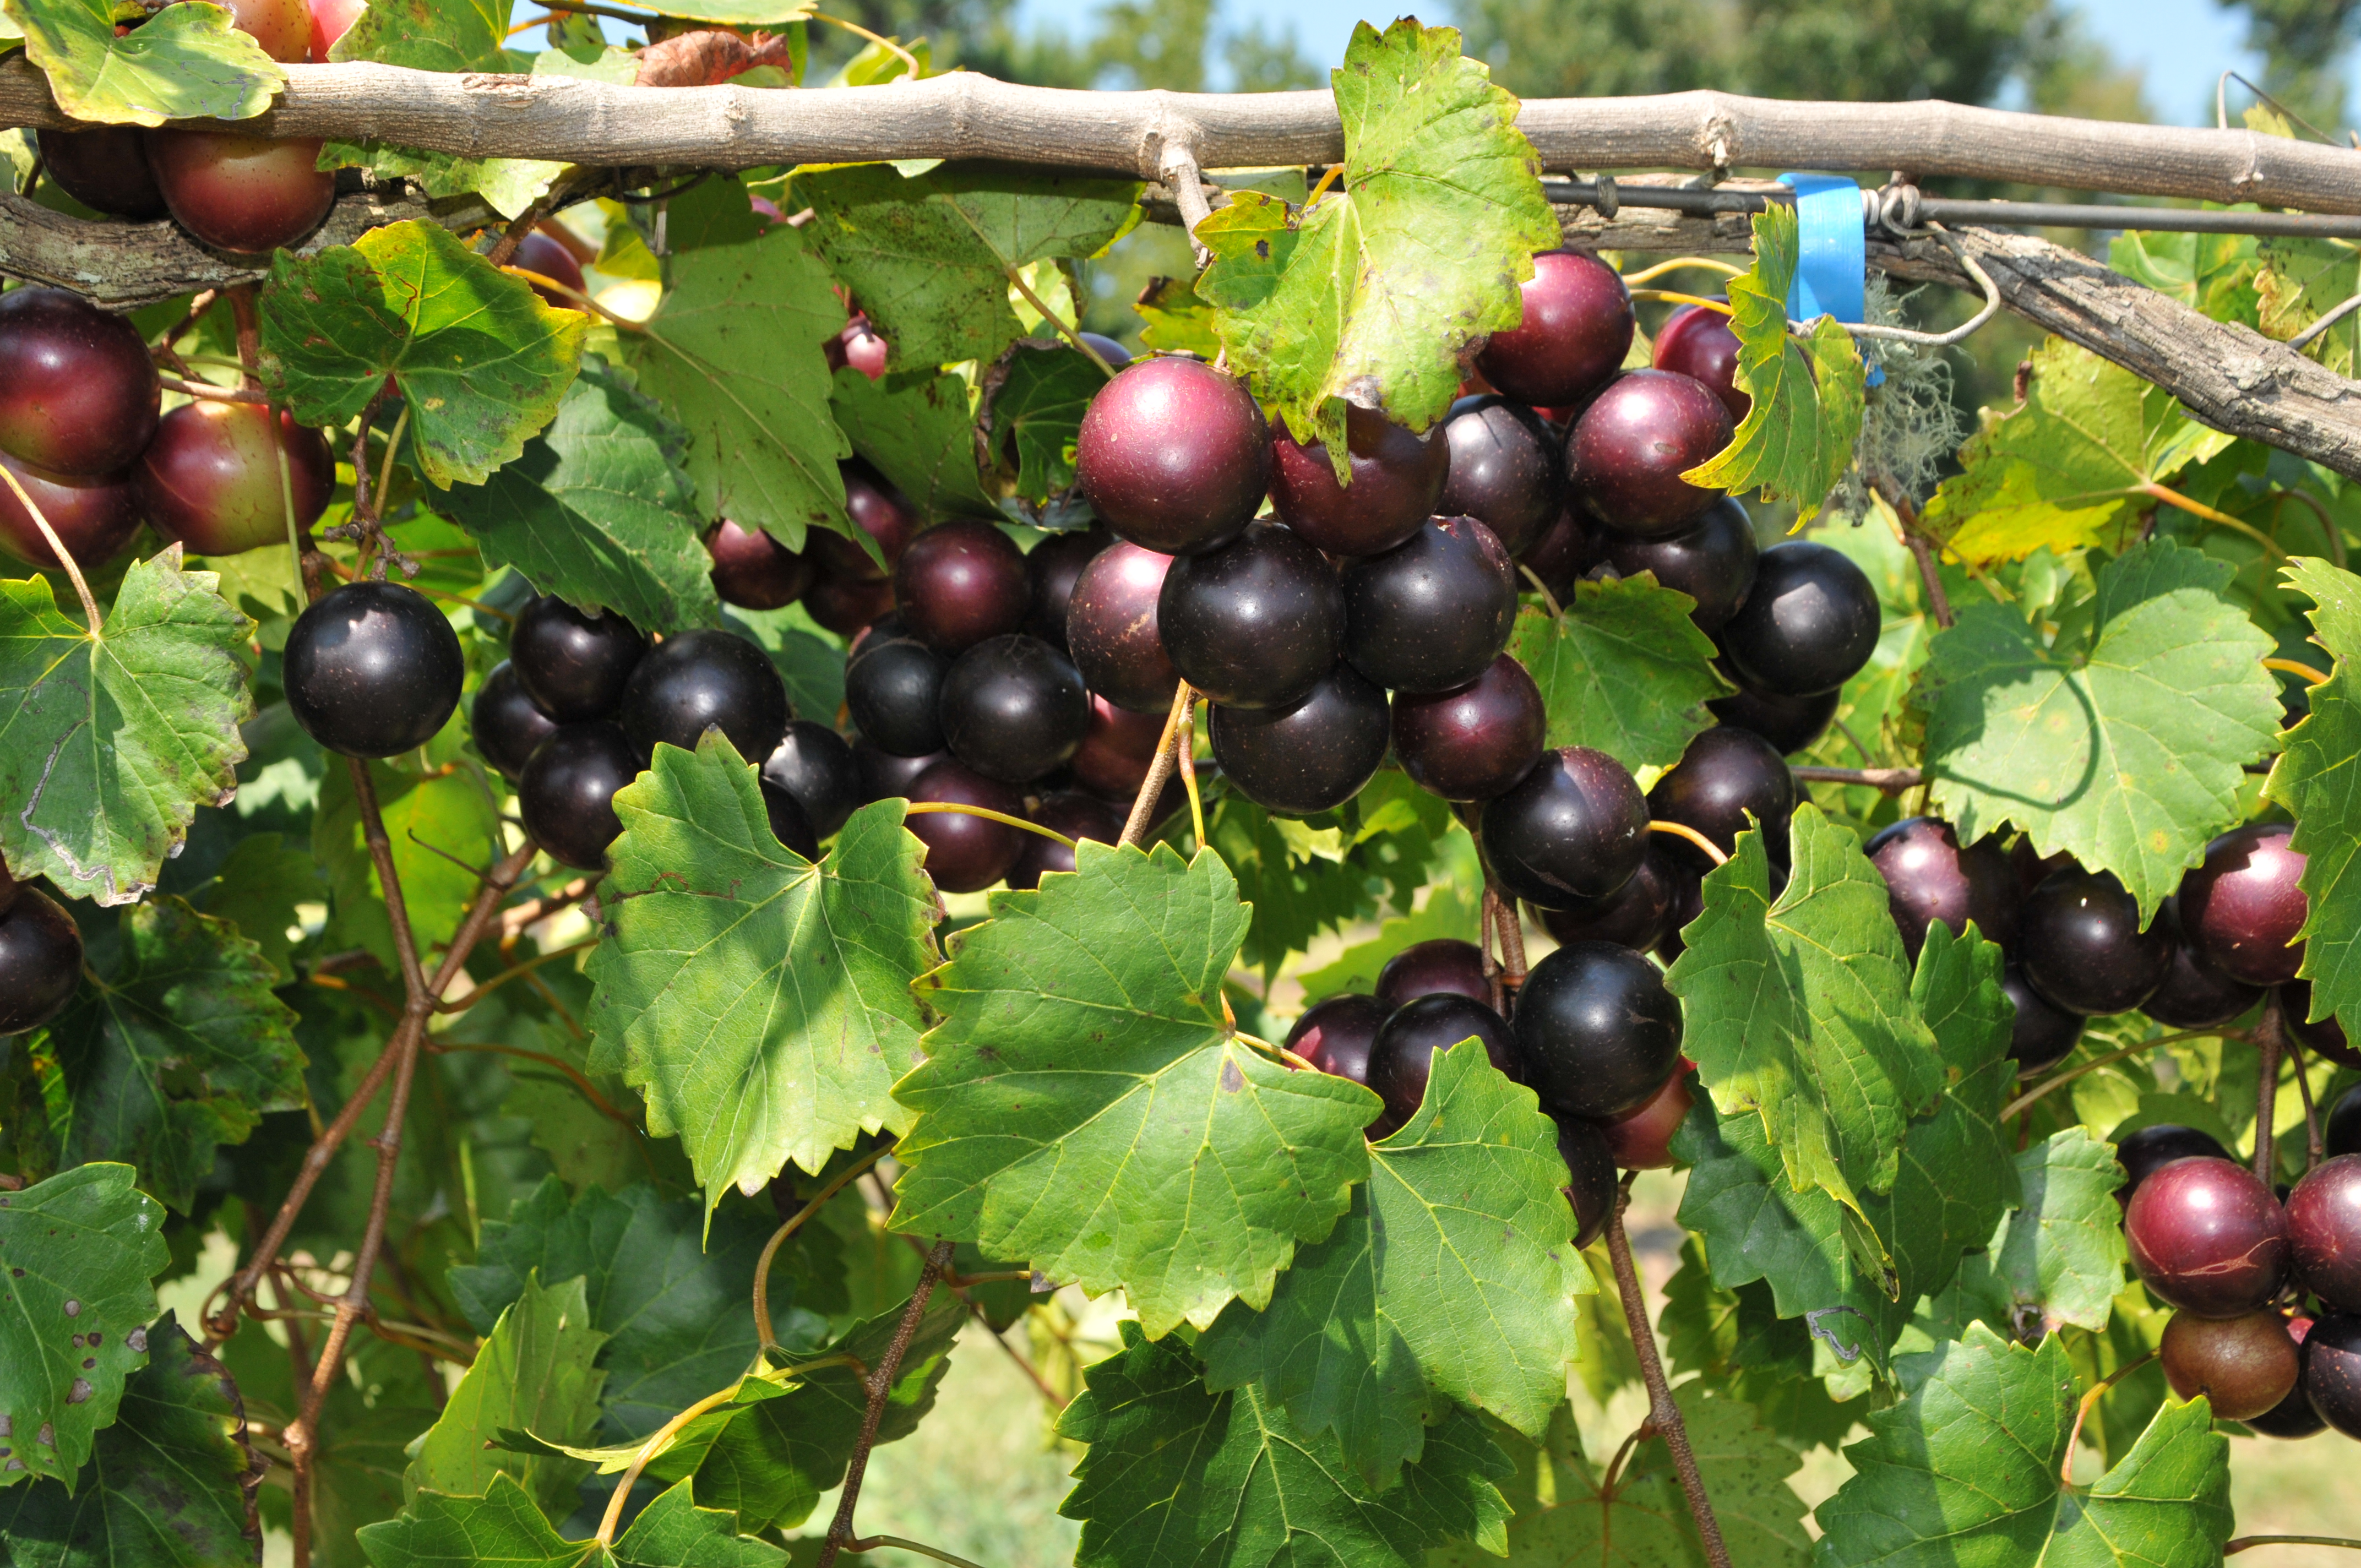 Supreme Muscadine. Female. Best of the best. 22% sugar. Large grapes. Ripens early season. A must have.